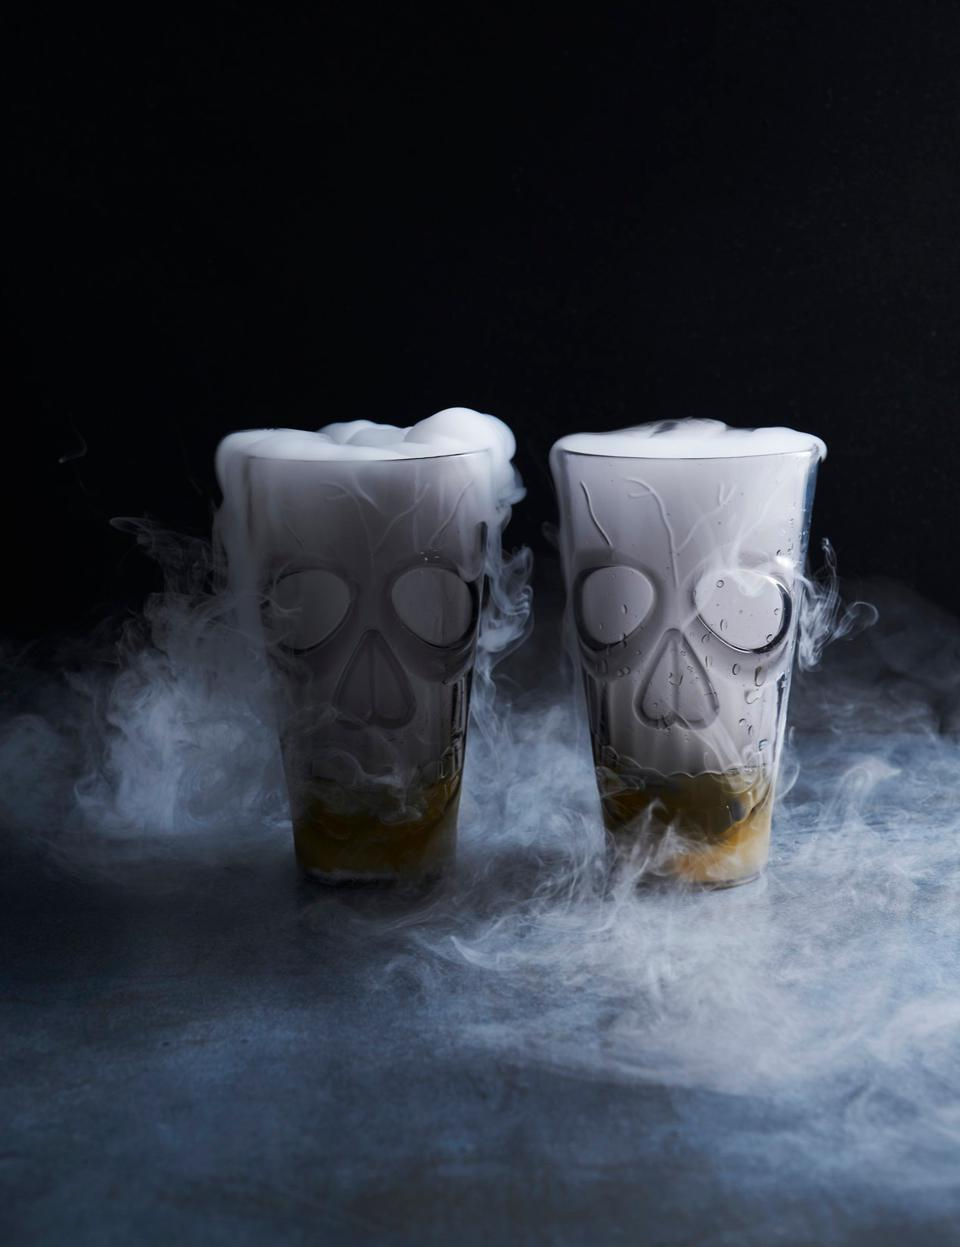 Two skull glasses with smoke coming out of them.